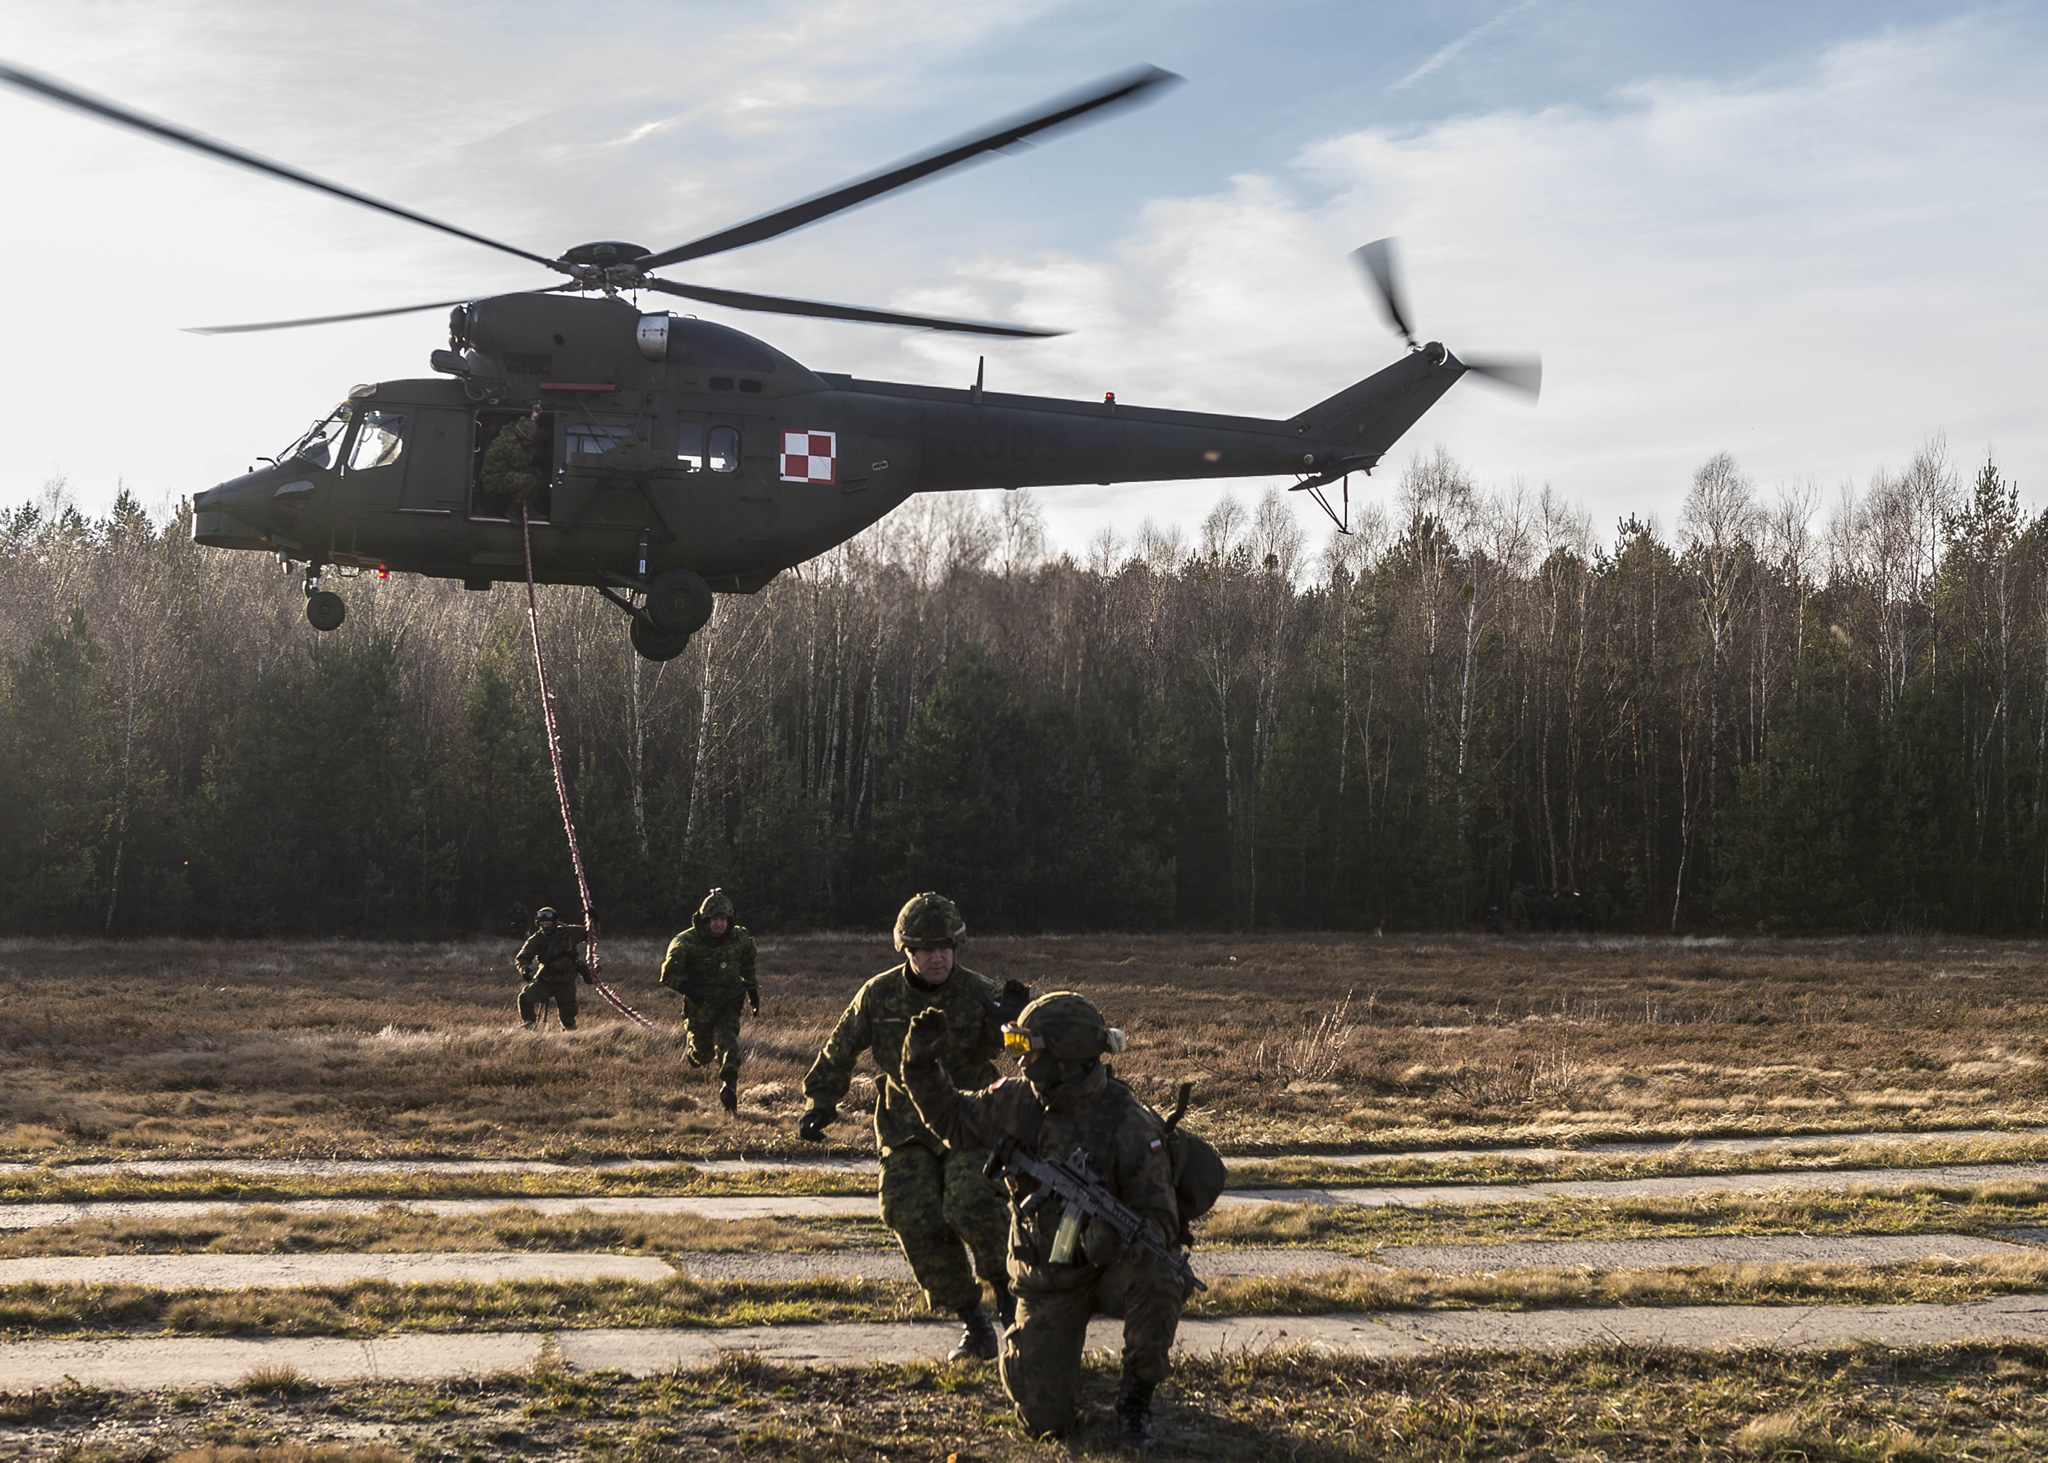 Canadian and Polish Armed Forces members decend from a helicopter on a rope during a fast rope exercise at Nowa Dęba Training Center in Nowa Dęba, Poland on December 4, 2015 during Operation REASSURANCE.